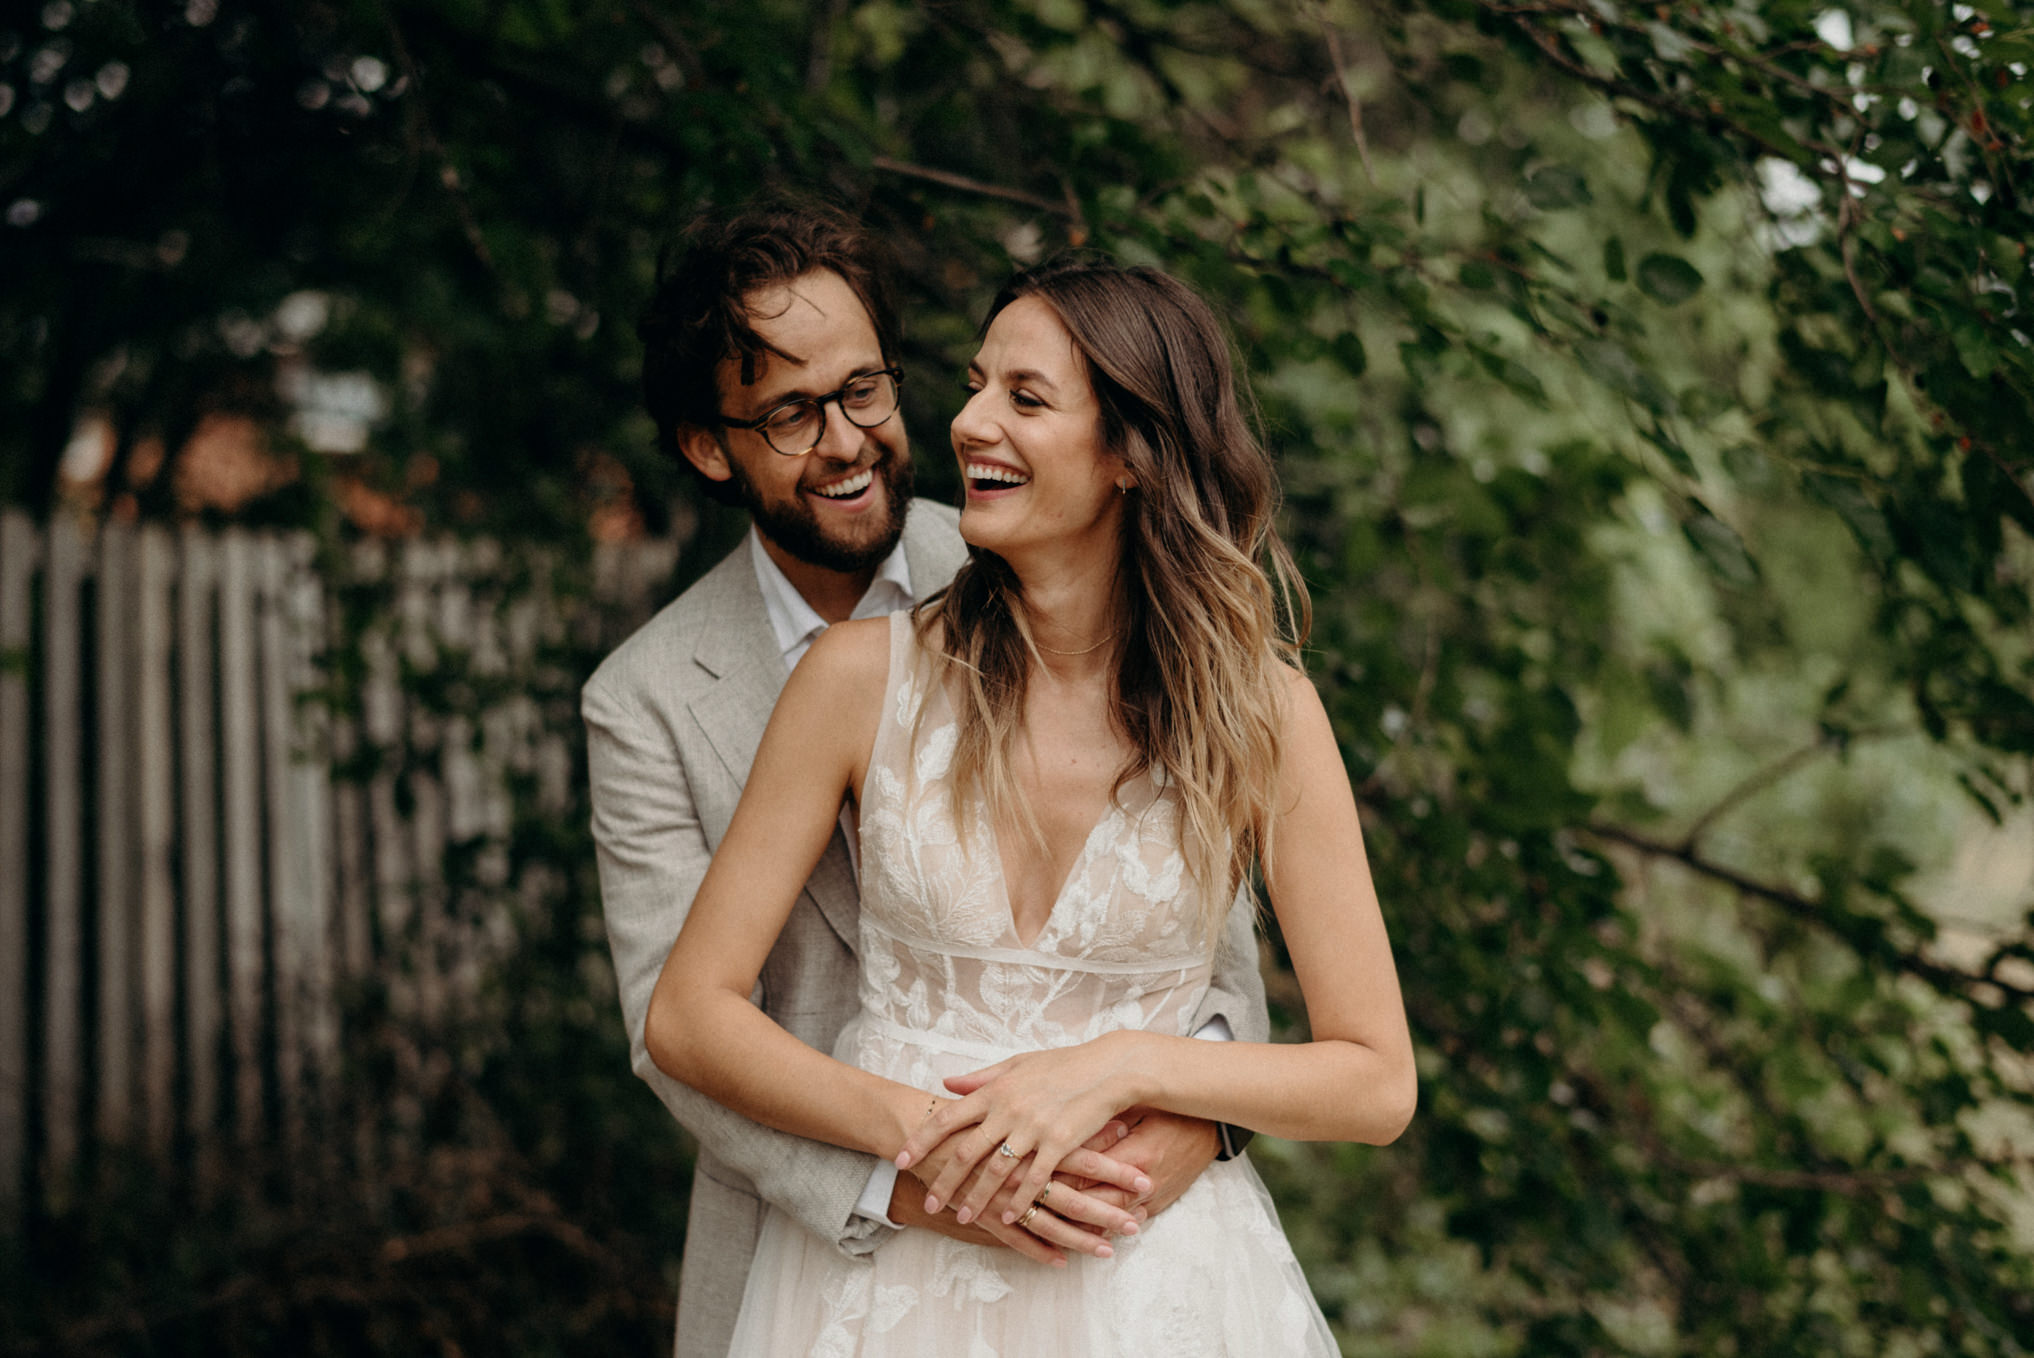 backyard outdoor wedding portraits